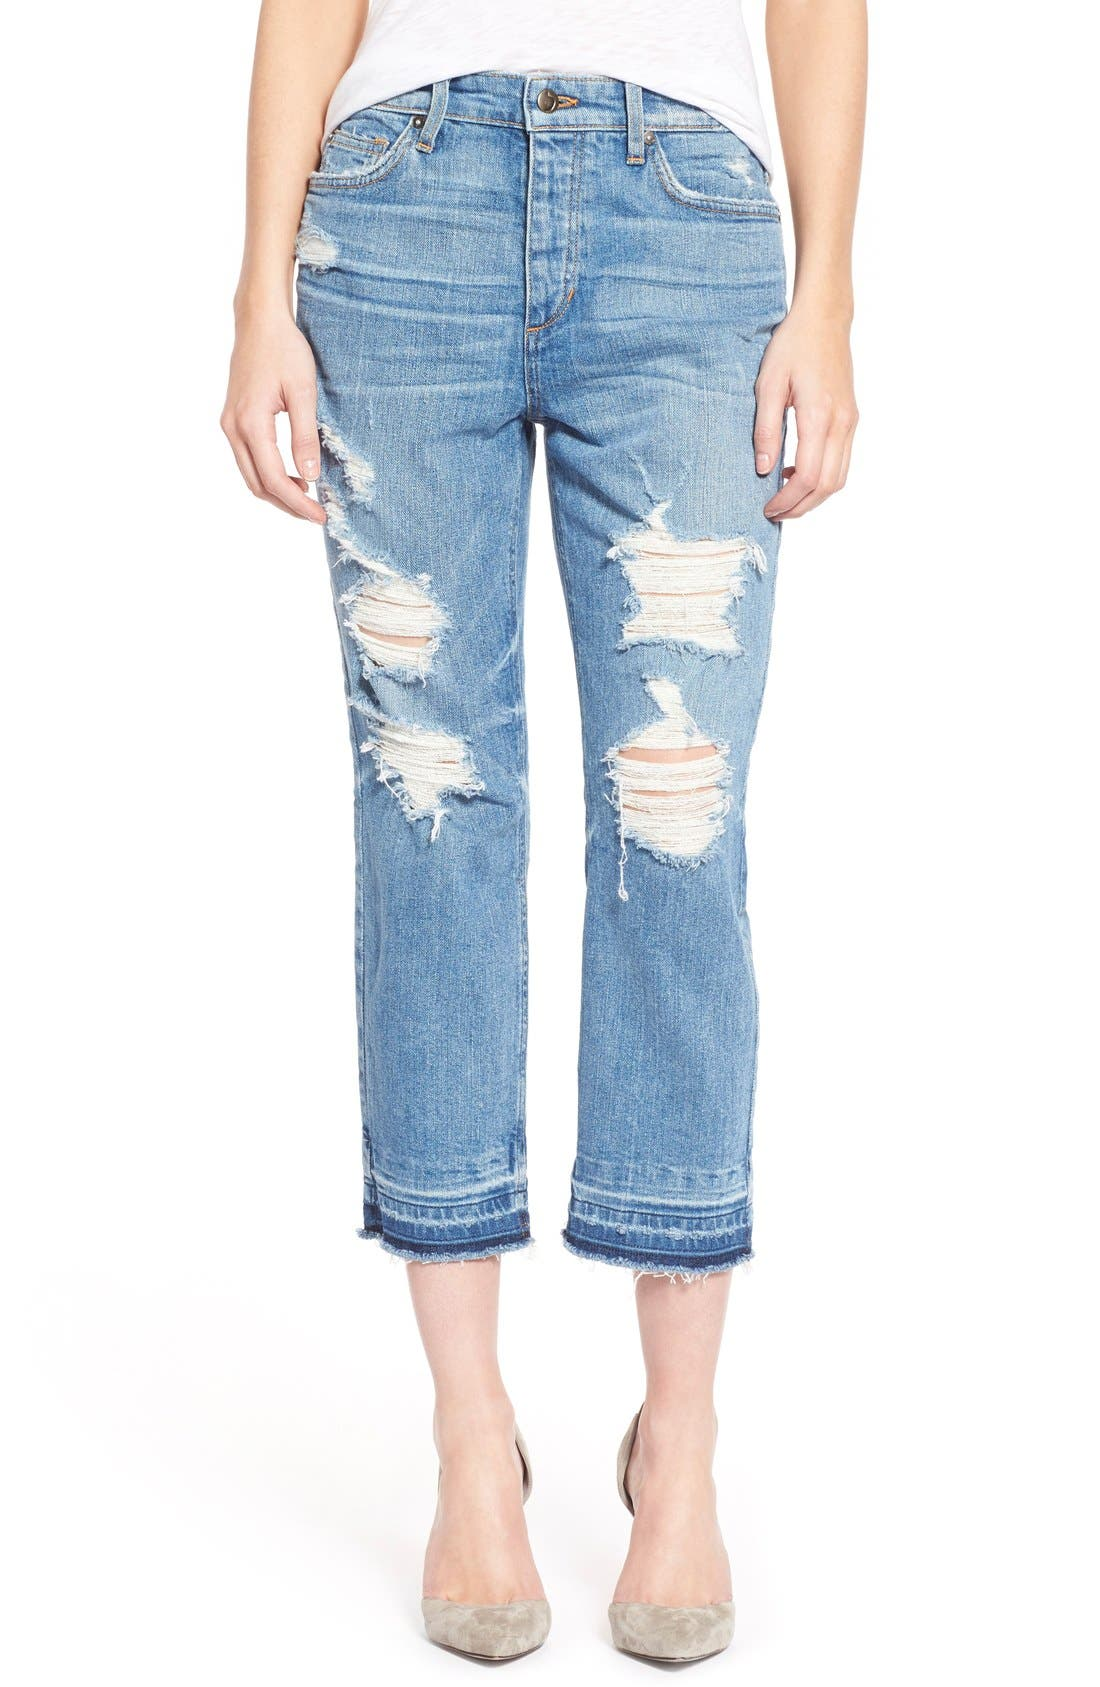 Alternate Image 1 Selected - Joe's 'Collector's - Debbie' High Rise Destroyed Boyfriend Jeans (Mazie)